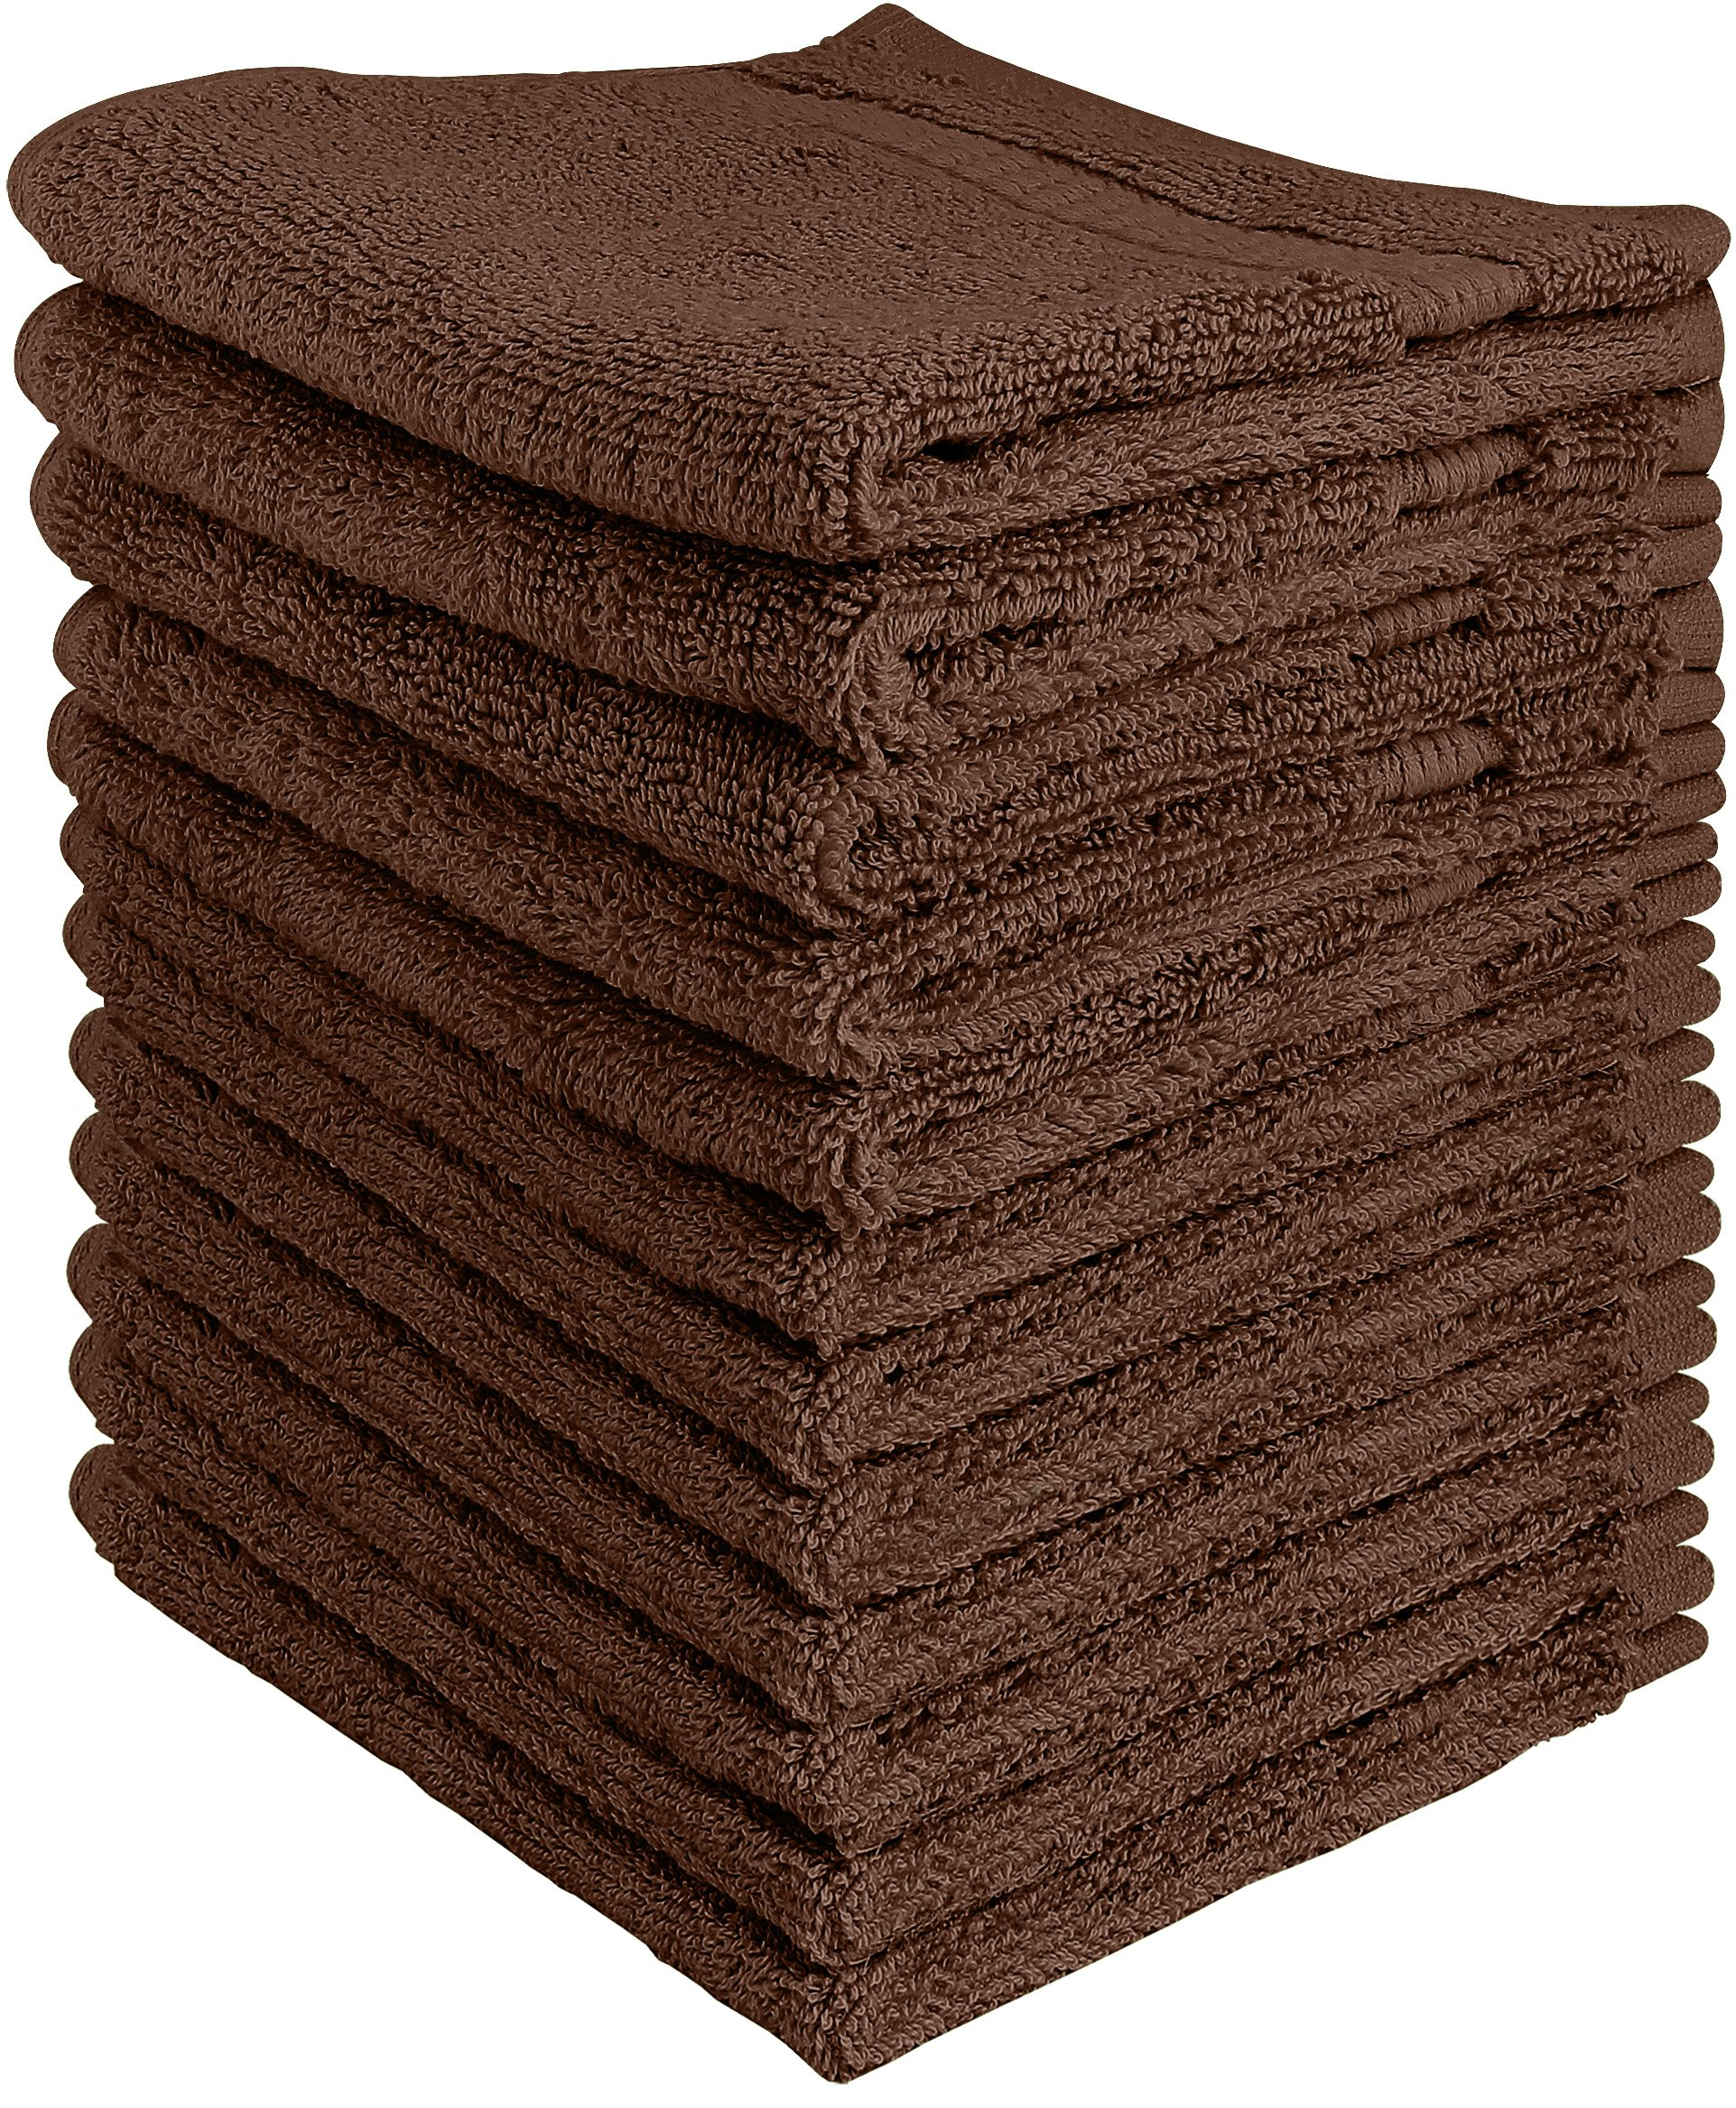 Utopia Towels Luxury Cotton Washcloth Towel Set (12 Pack, Dark Brown, 12 x 12 Inches) Multi-Purpose Extra Soft Fingertip Towels, Highly Absorbent Face Cloths, Machine Washable Sport and Workout Towels